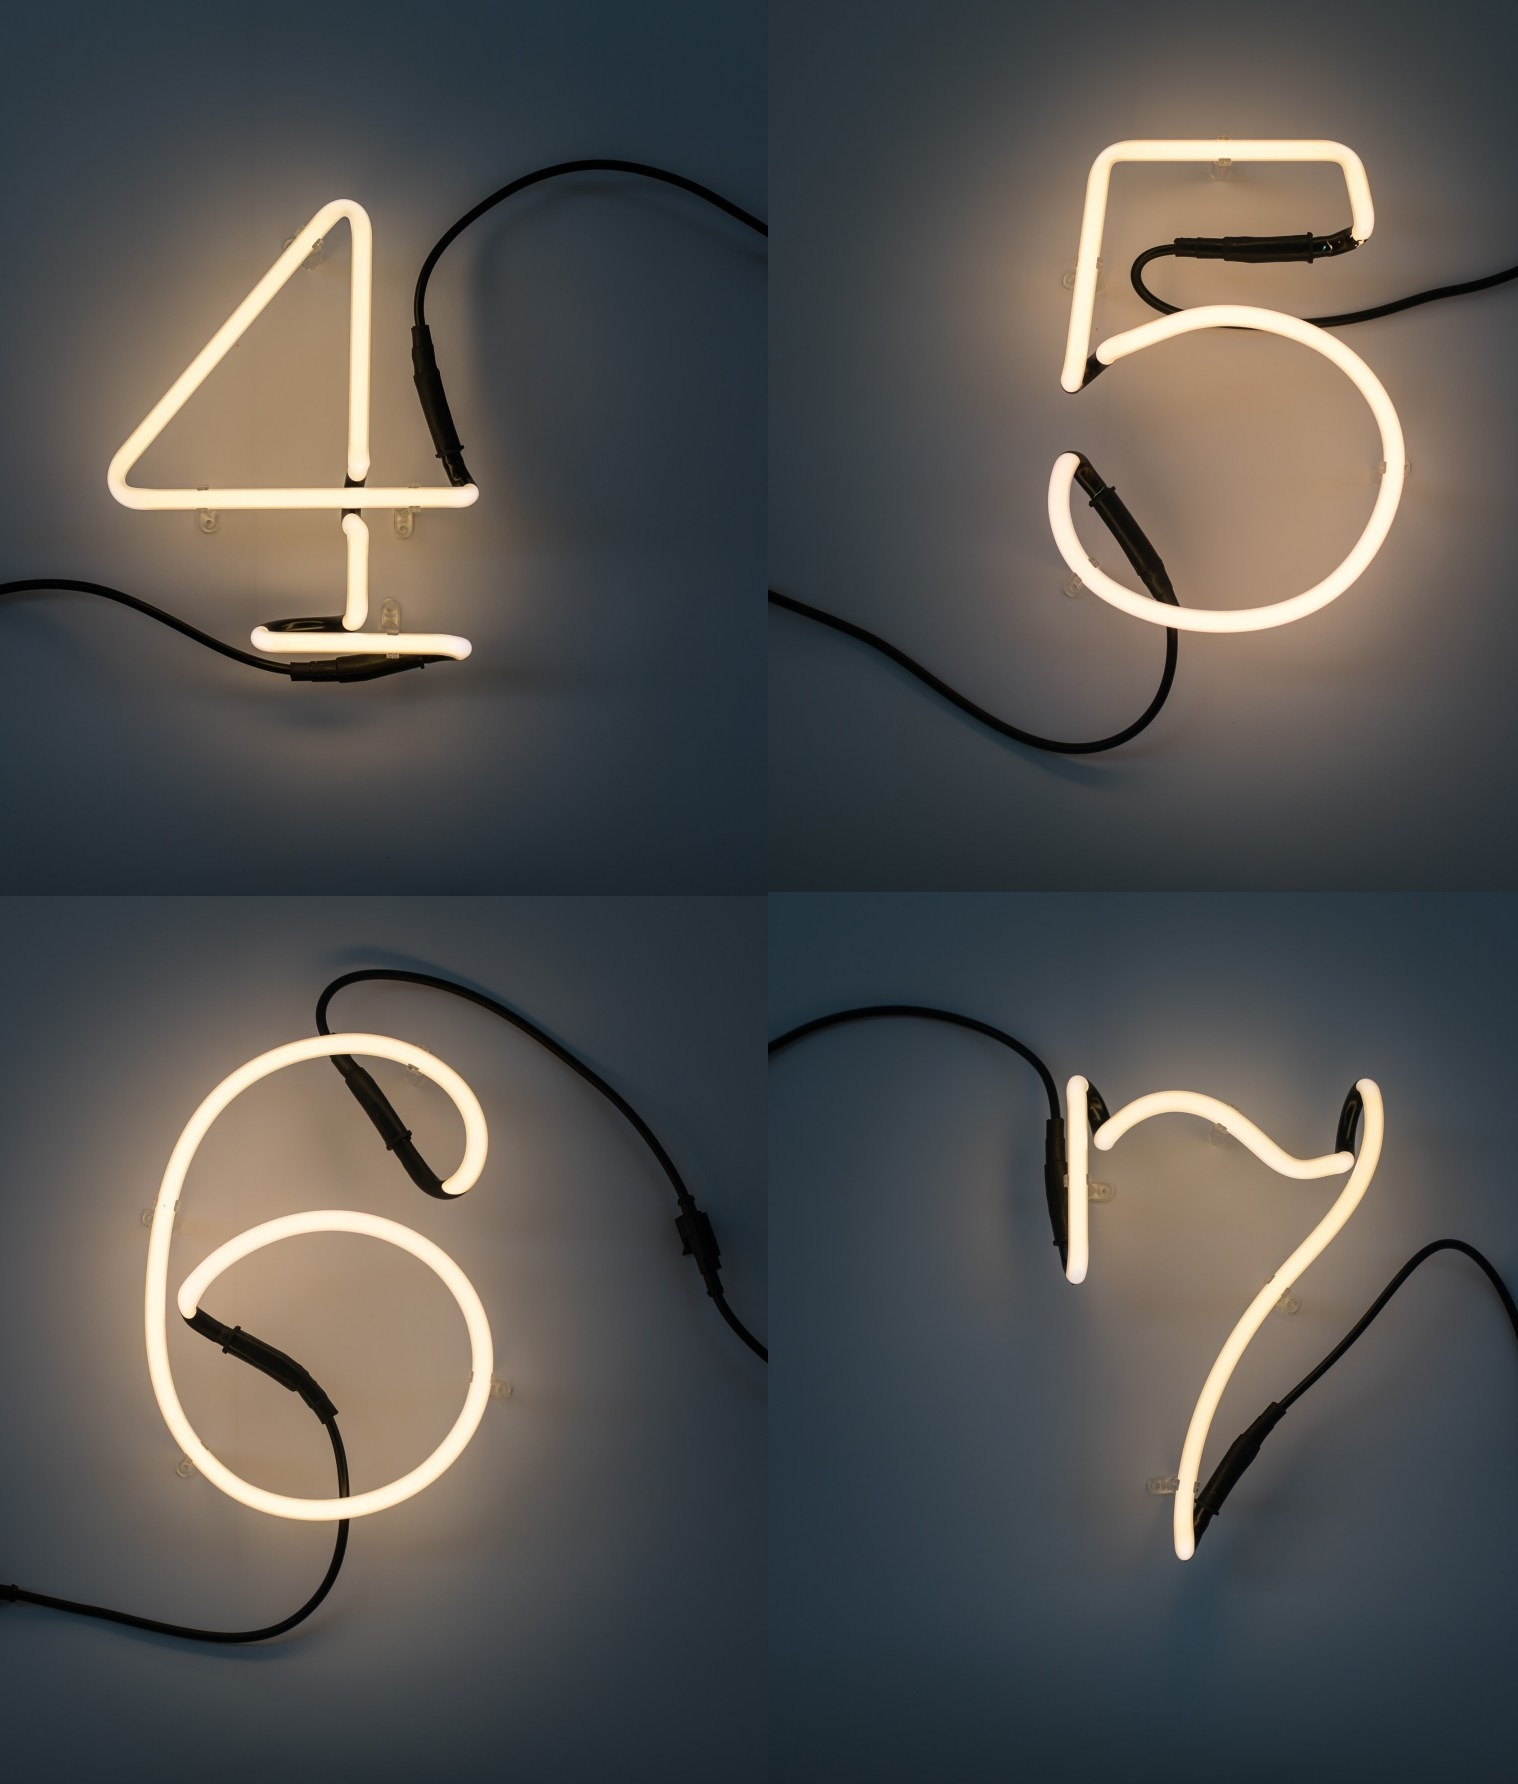 Linkable Neon Numbers And Symbols Perfect For Home Or